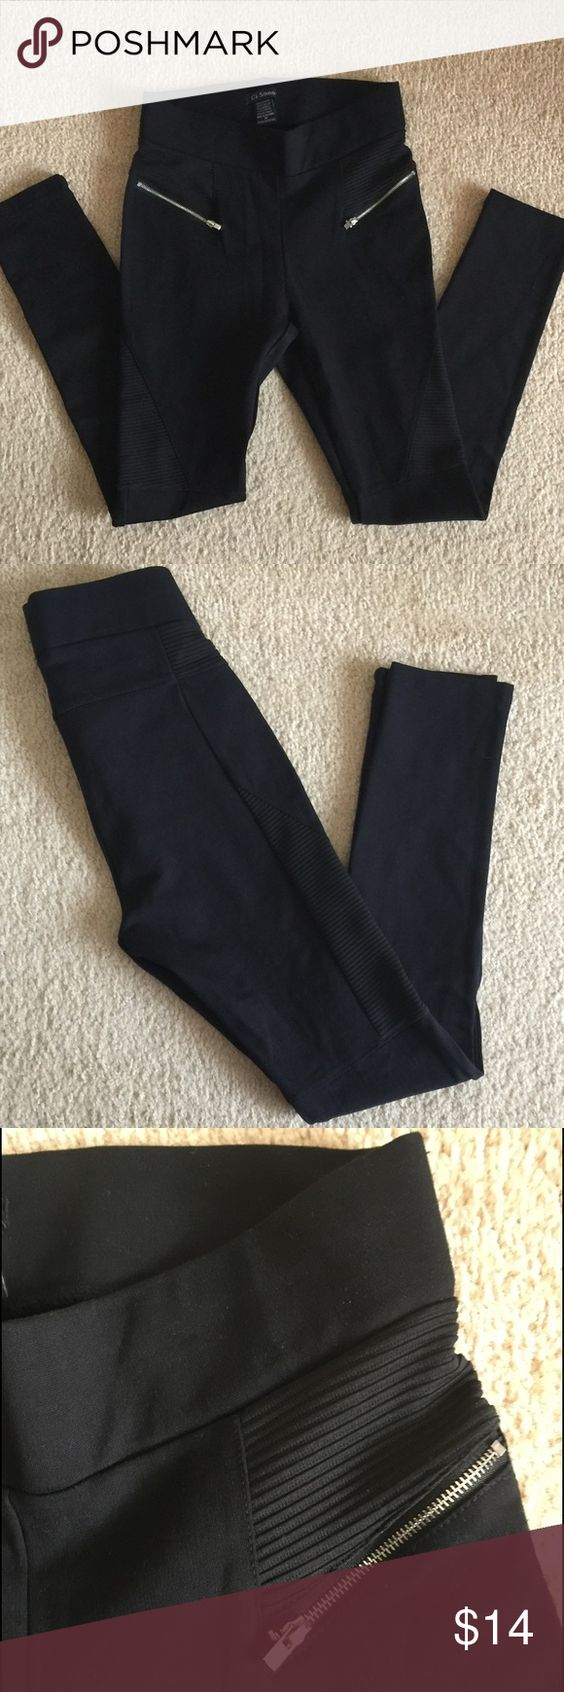 🚨SALE🚨 Ci Sono Leggings Black leggings with silver zippers!! Textured details by the zippers around the waist and side of the knees going up the thigh!! Trendy n comfy!! Too tight on me!! Only wore it once. Excellent condition!! Pants Leggings